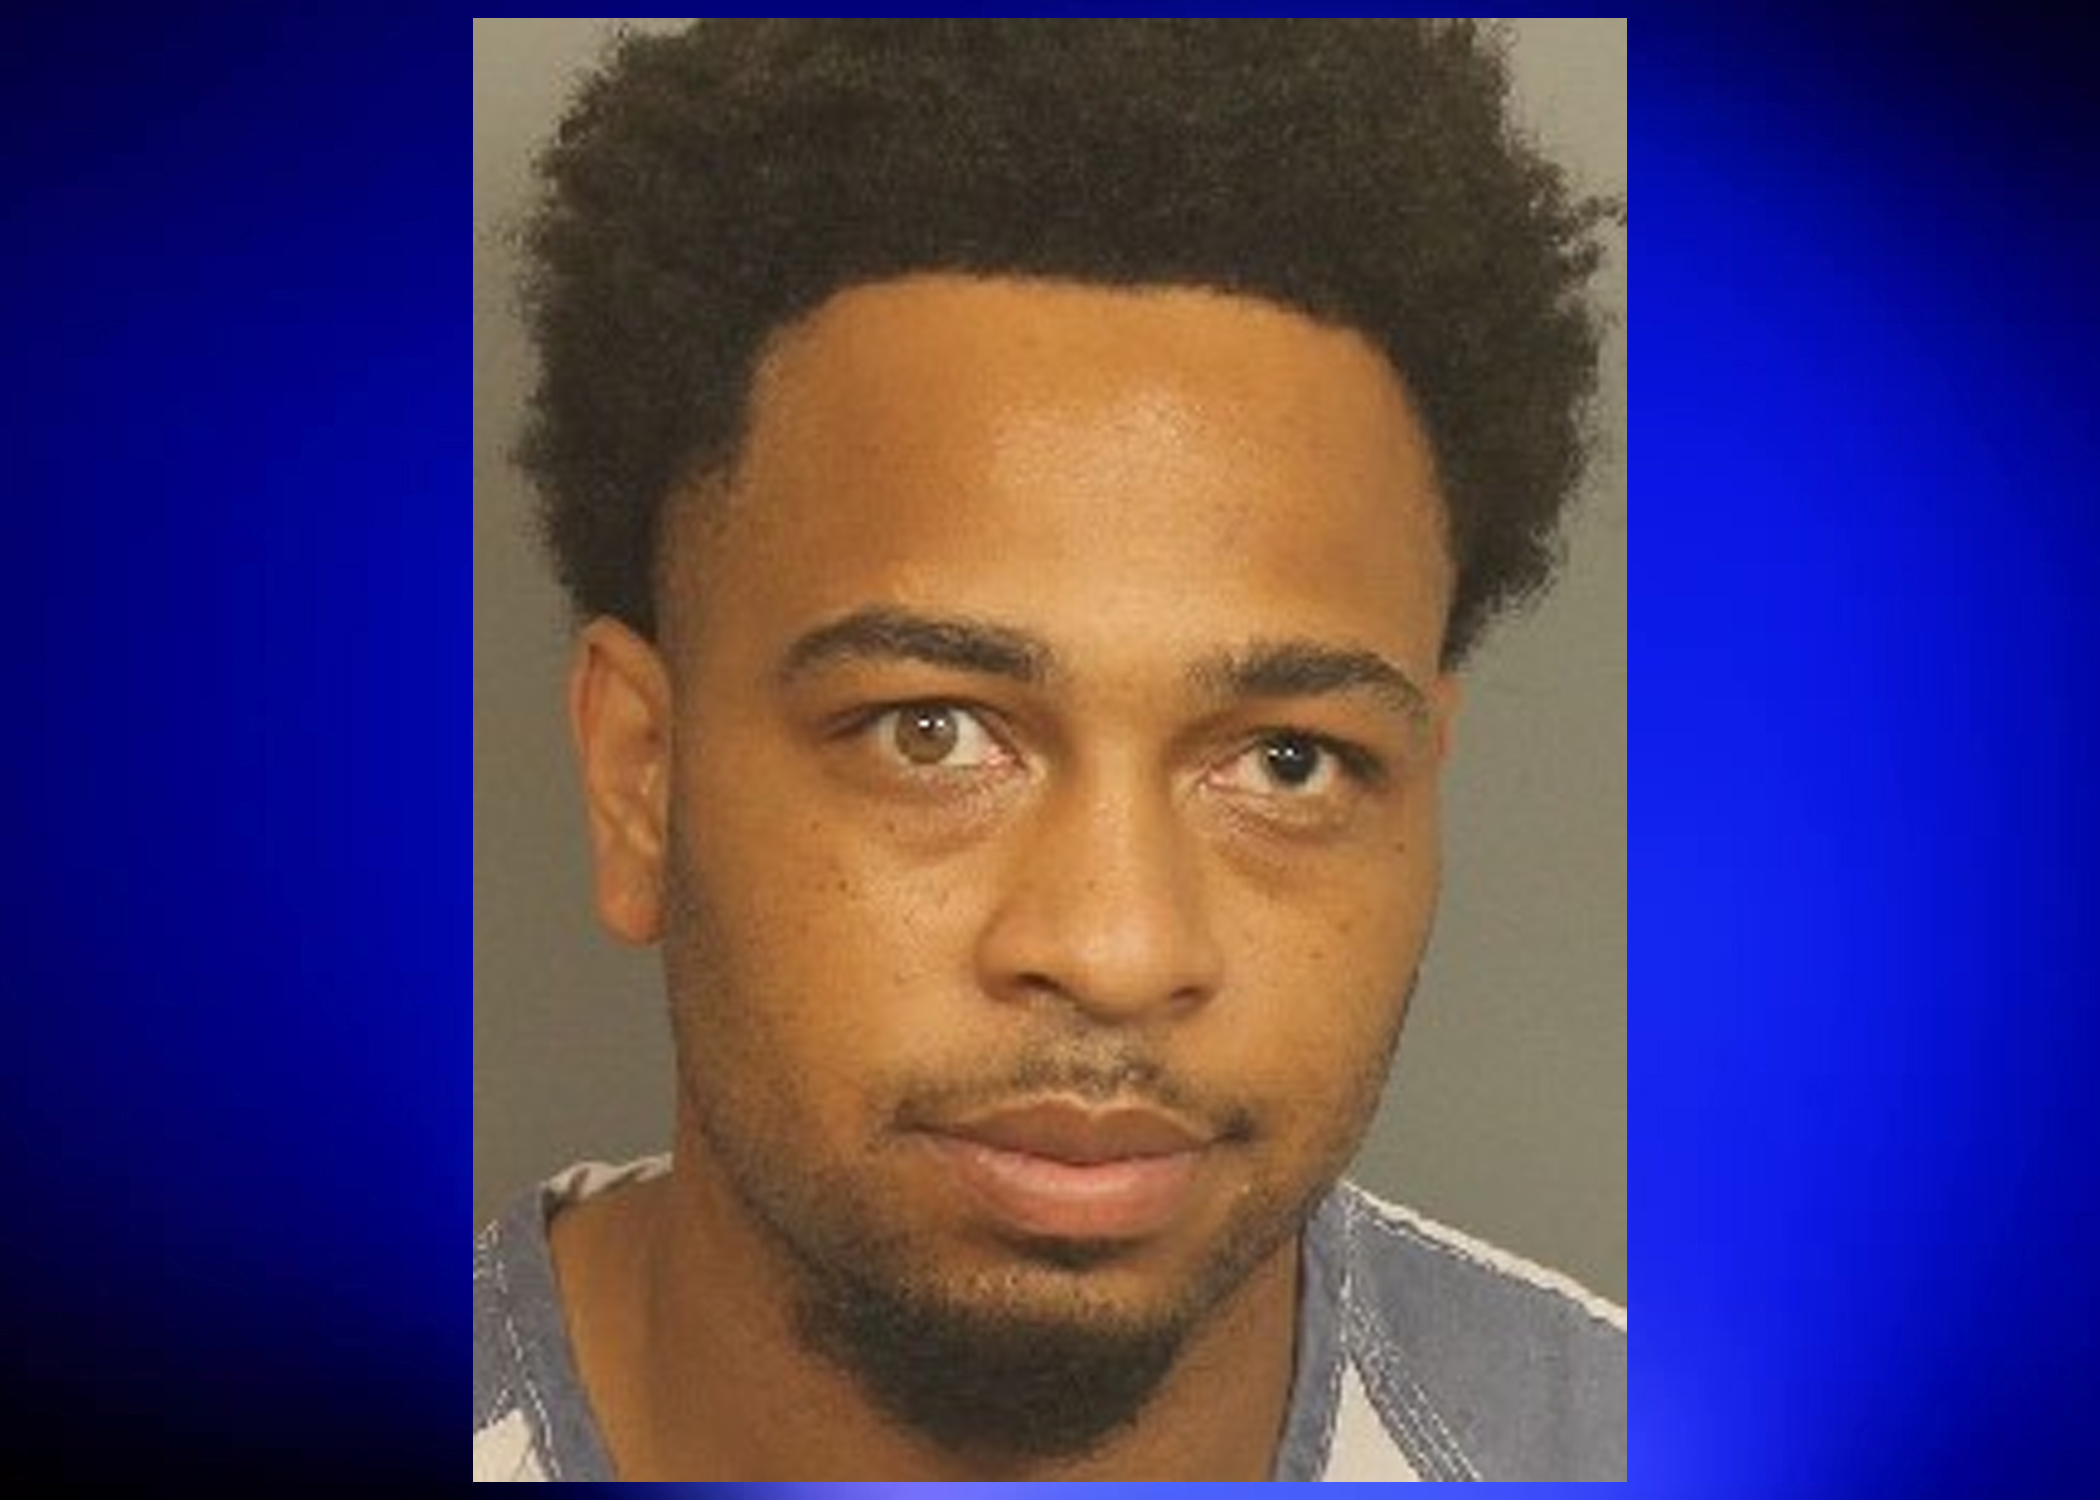 Jefferson County man wanted on drug trafficking charge